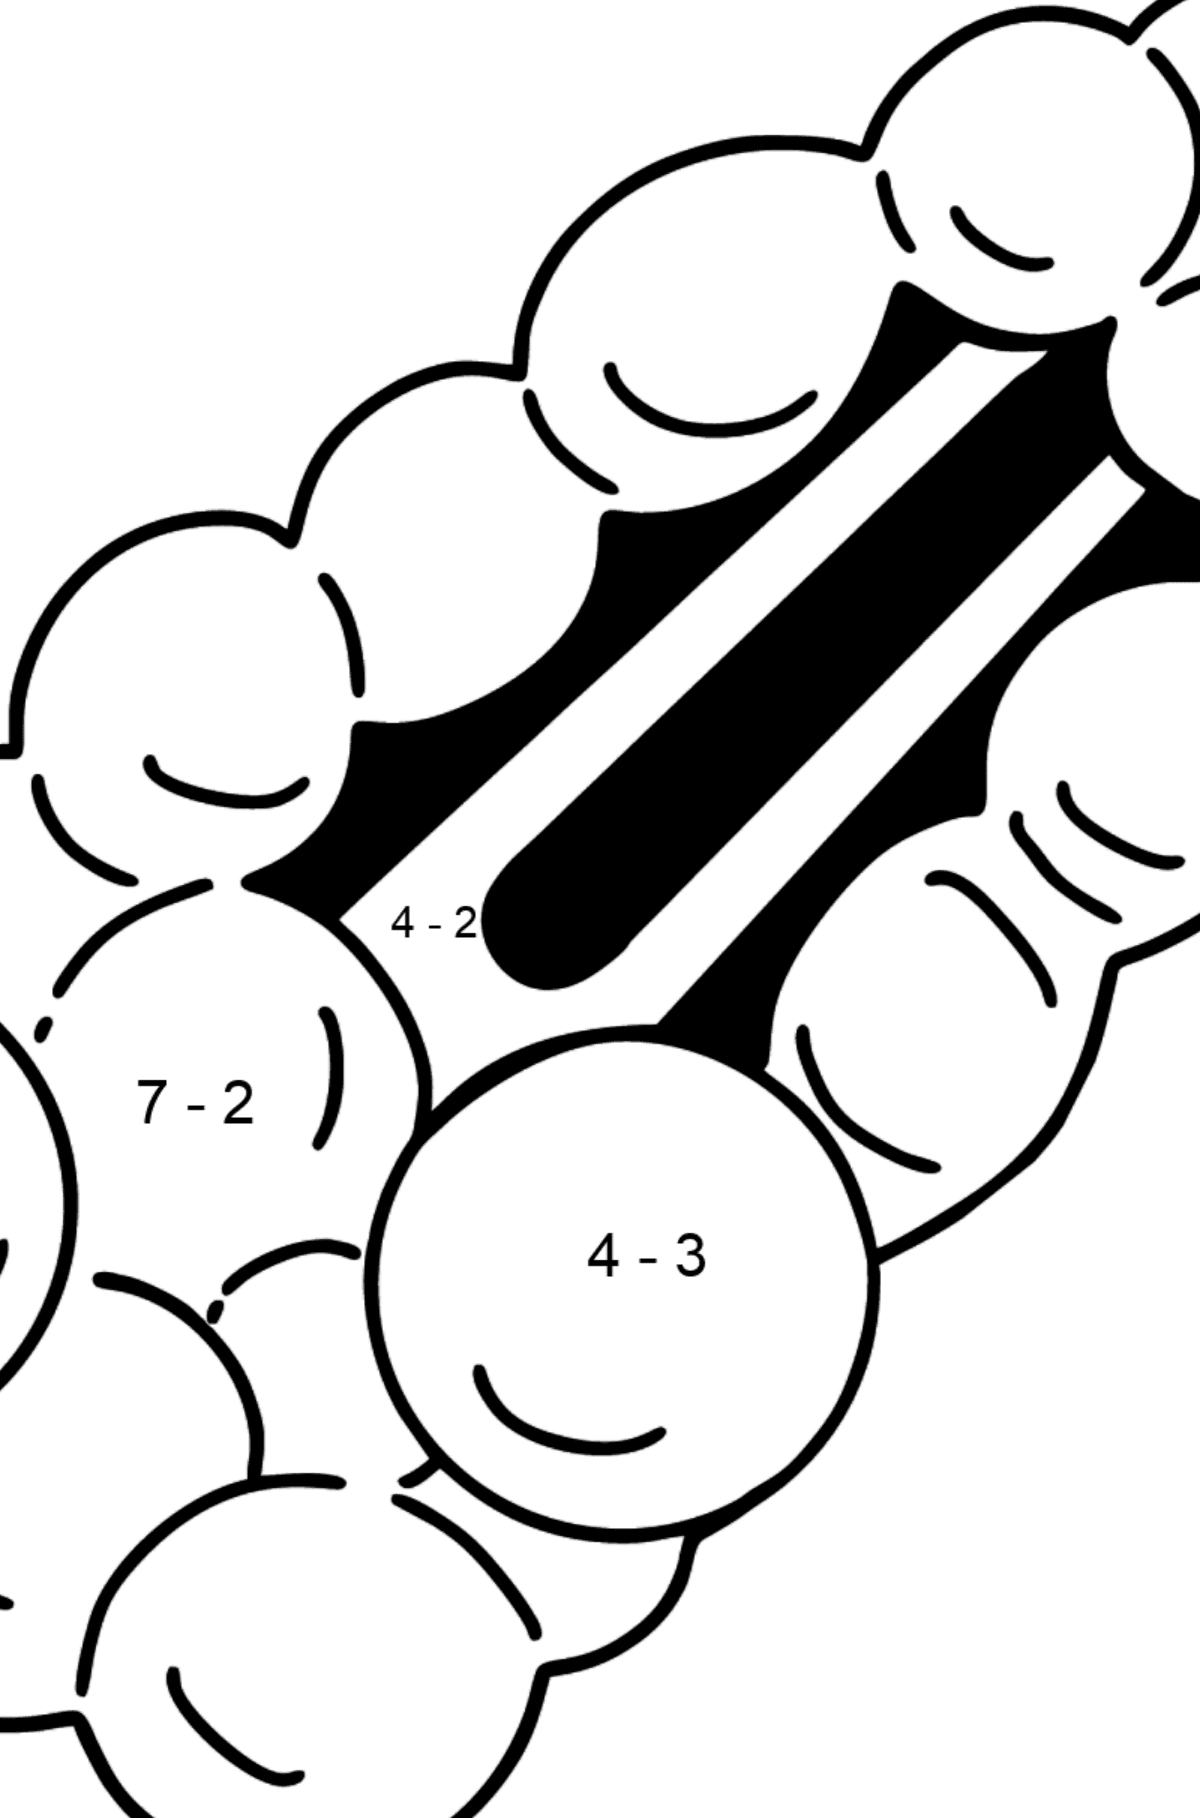 Barrette coloring page - Math Coloring - Subtraction for Kids